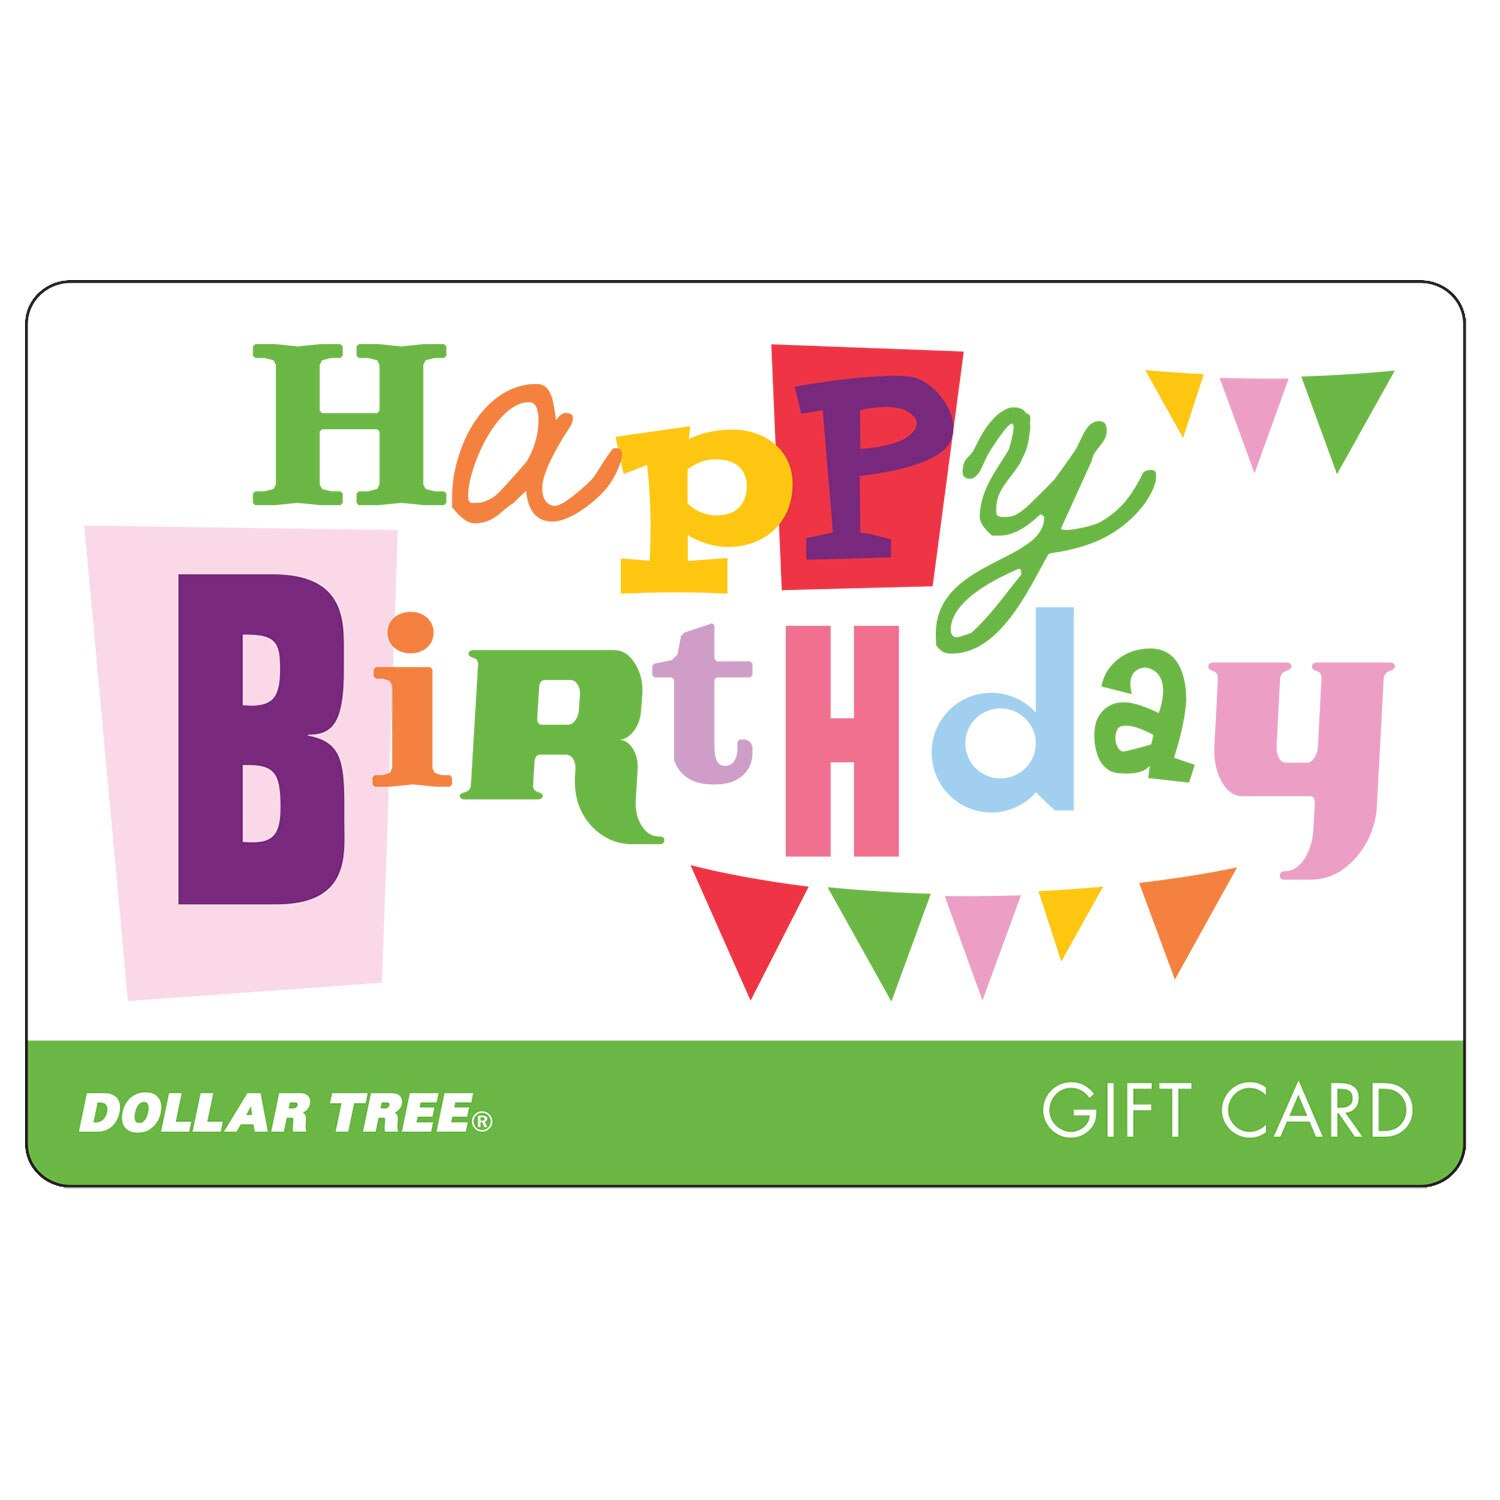 Dollartree Com Dollar Tree Gift Cards